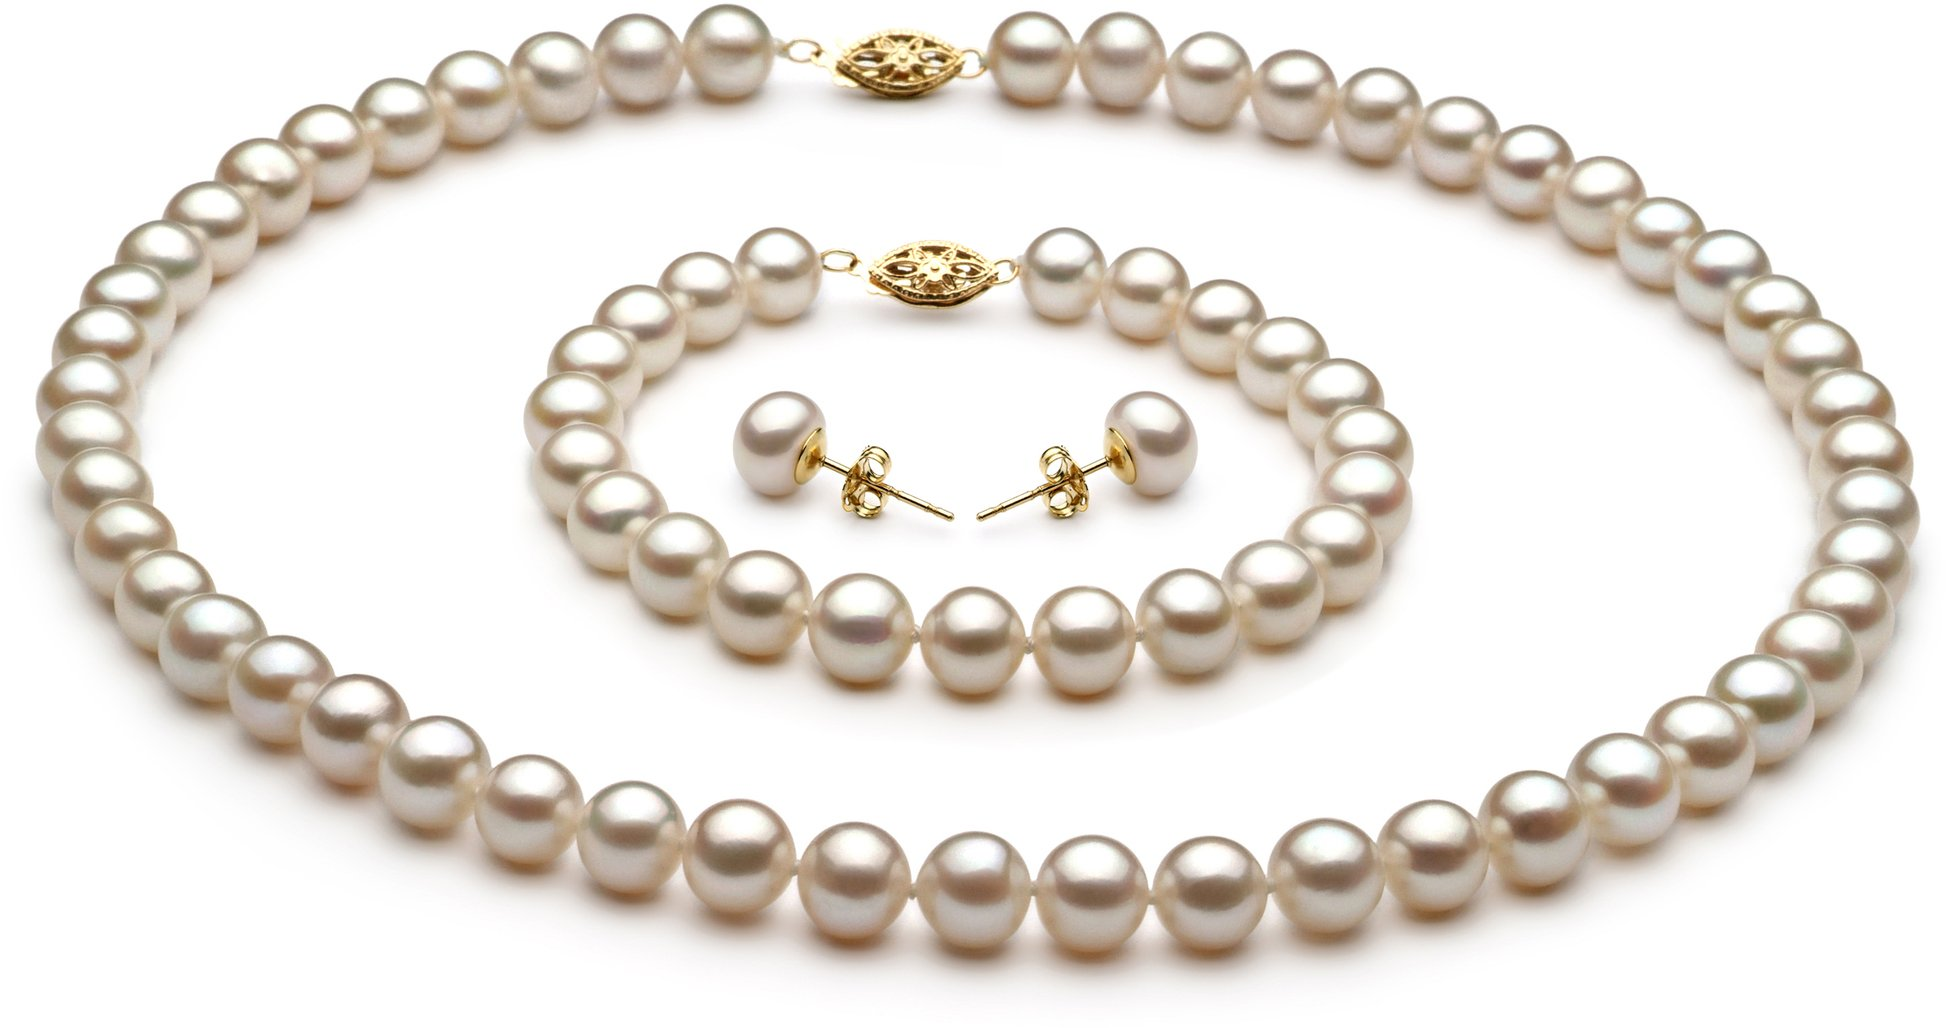 PearlsOnly - White 7.5-8.5mm AA Quality Freshwater Cultured Pearl Set-23 in Matinee length